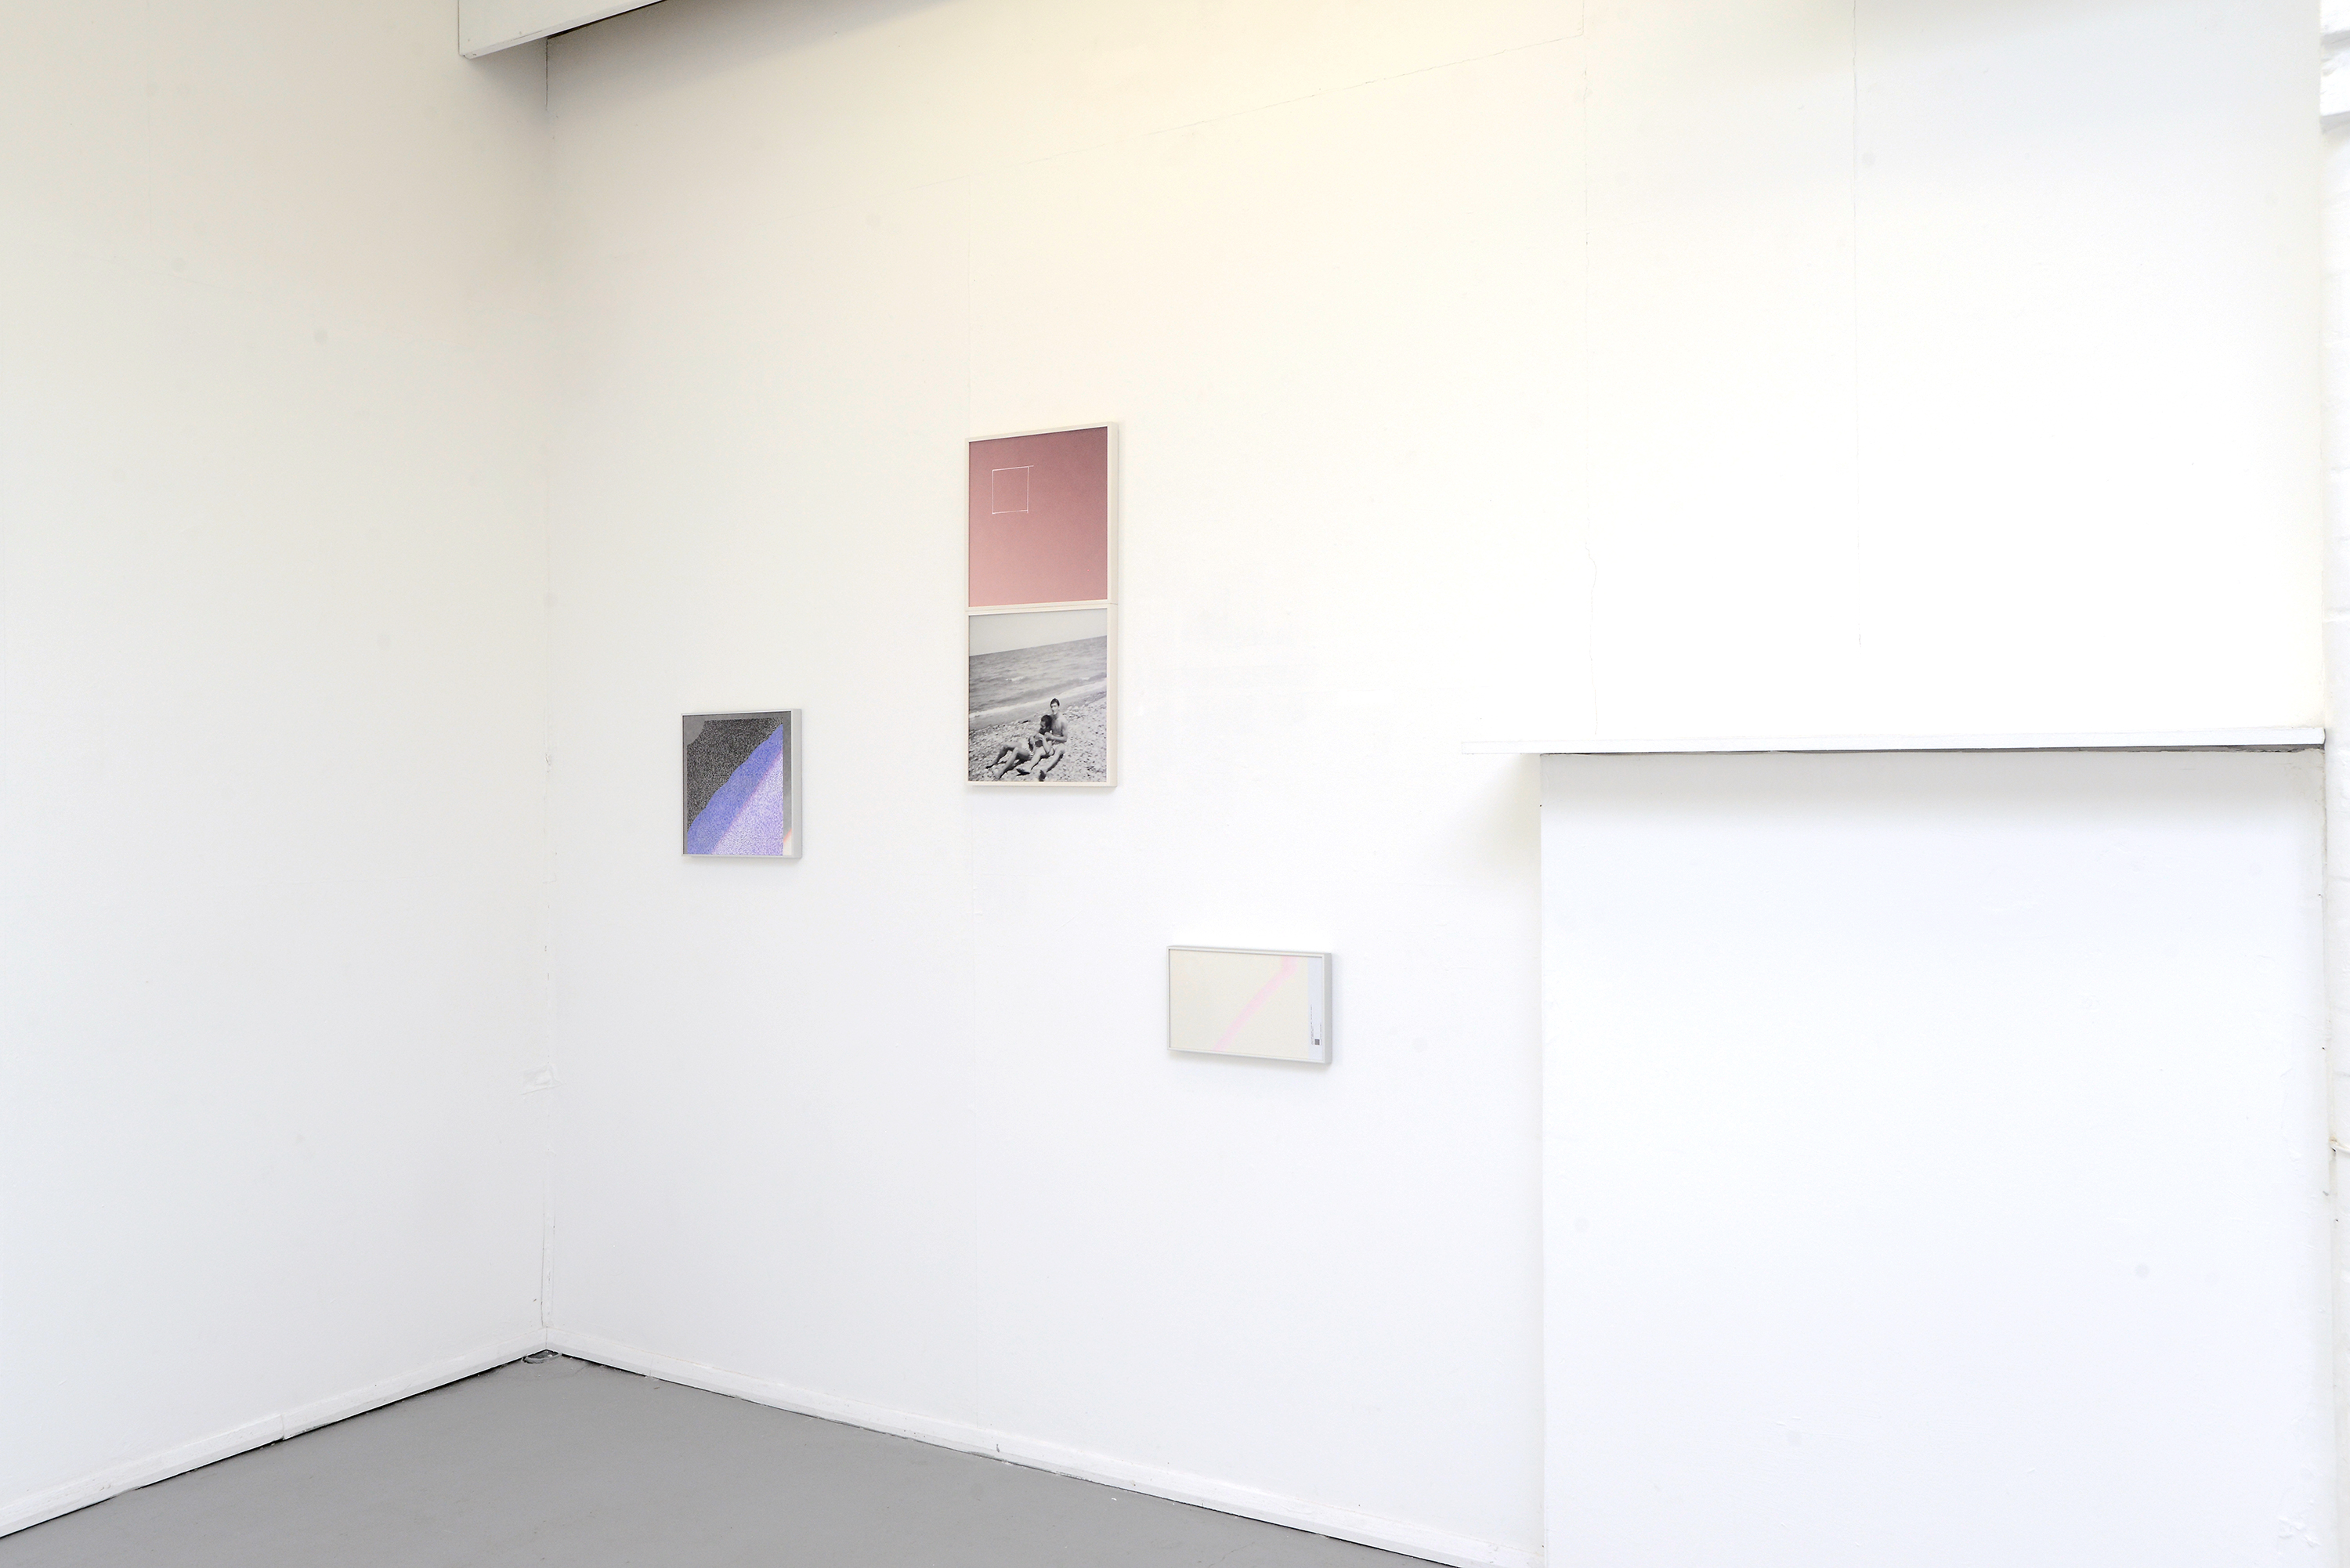 A photo of a white gallery space